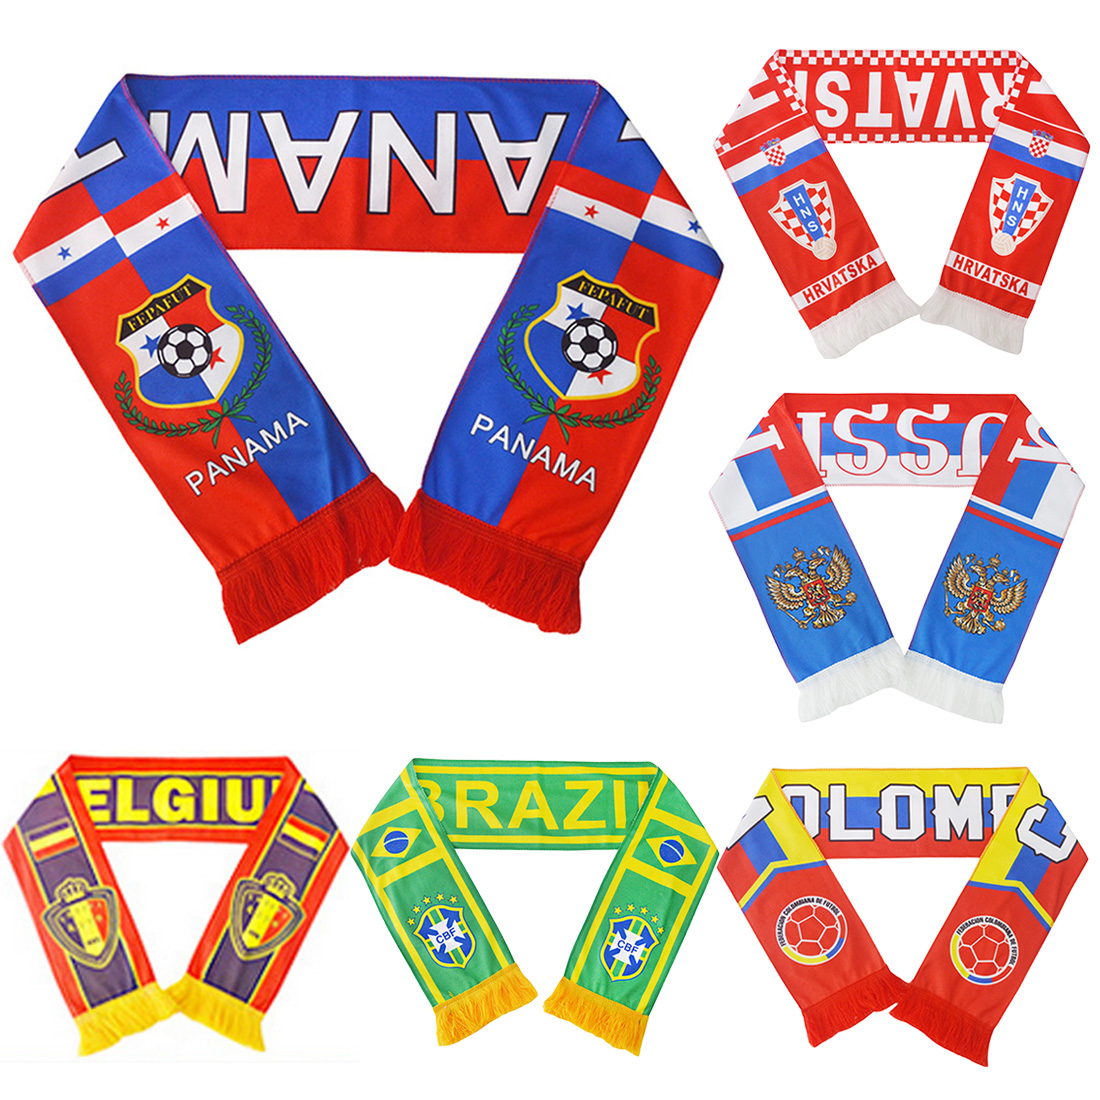 New Football Scarf Soccer Ball Fan Scarf 12 Teams Flag Banner Calcio Bola De Futebol Cheerleaders Scarf Top Quality